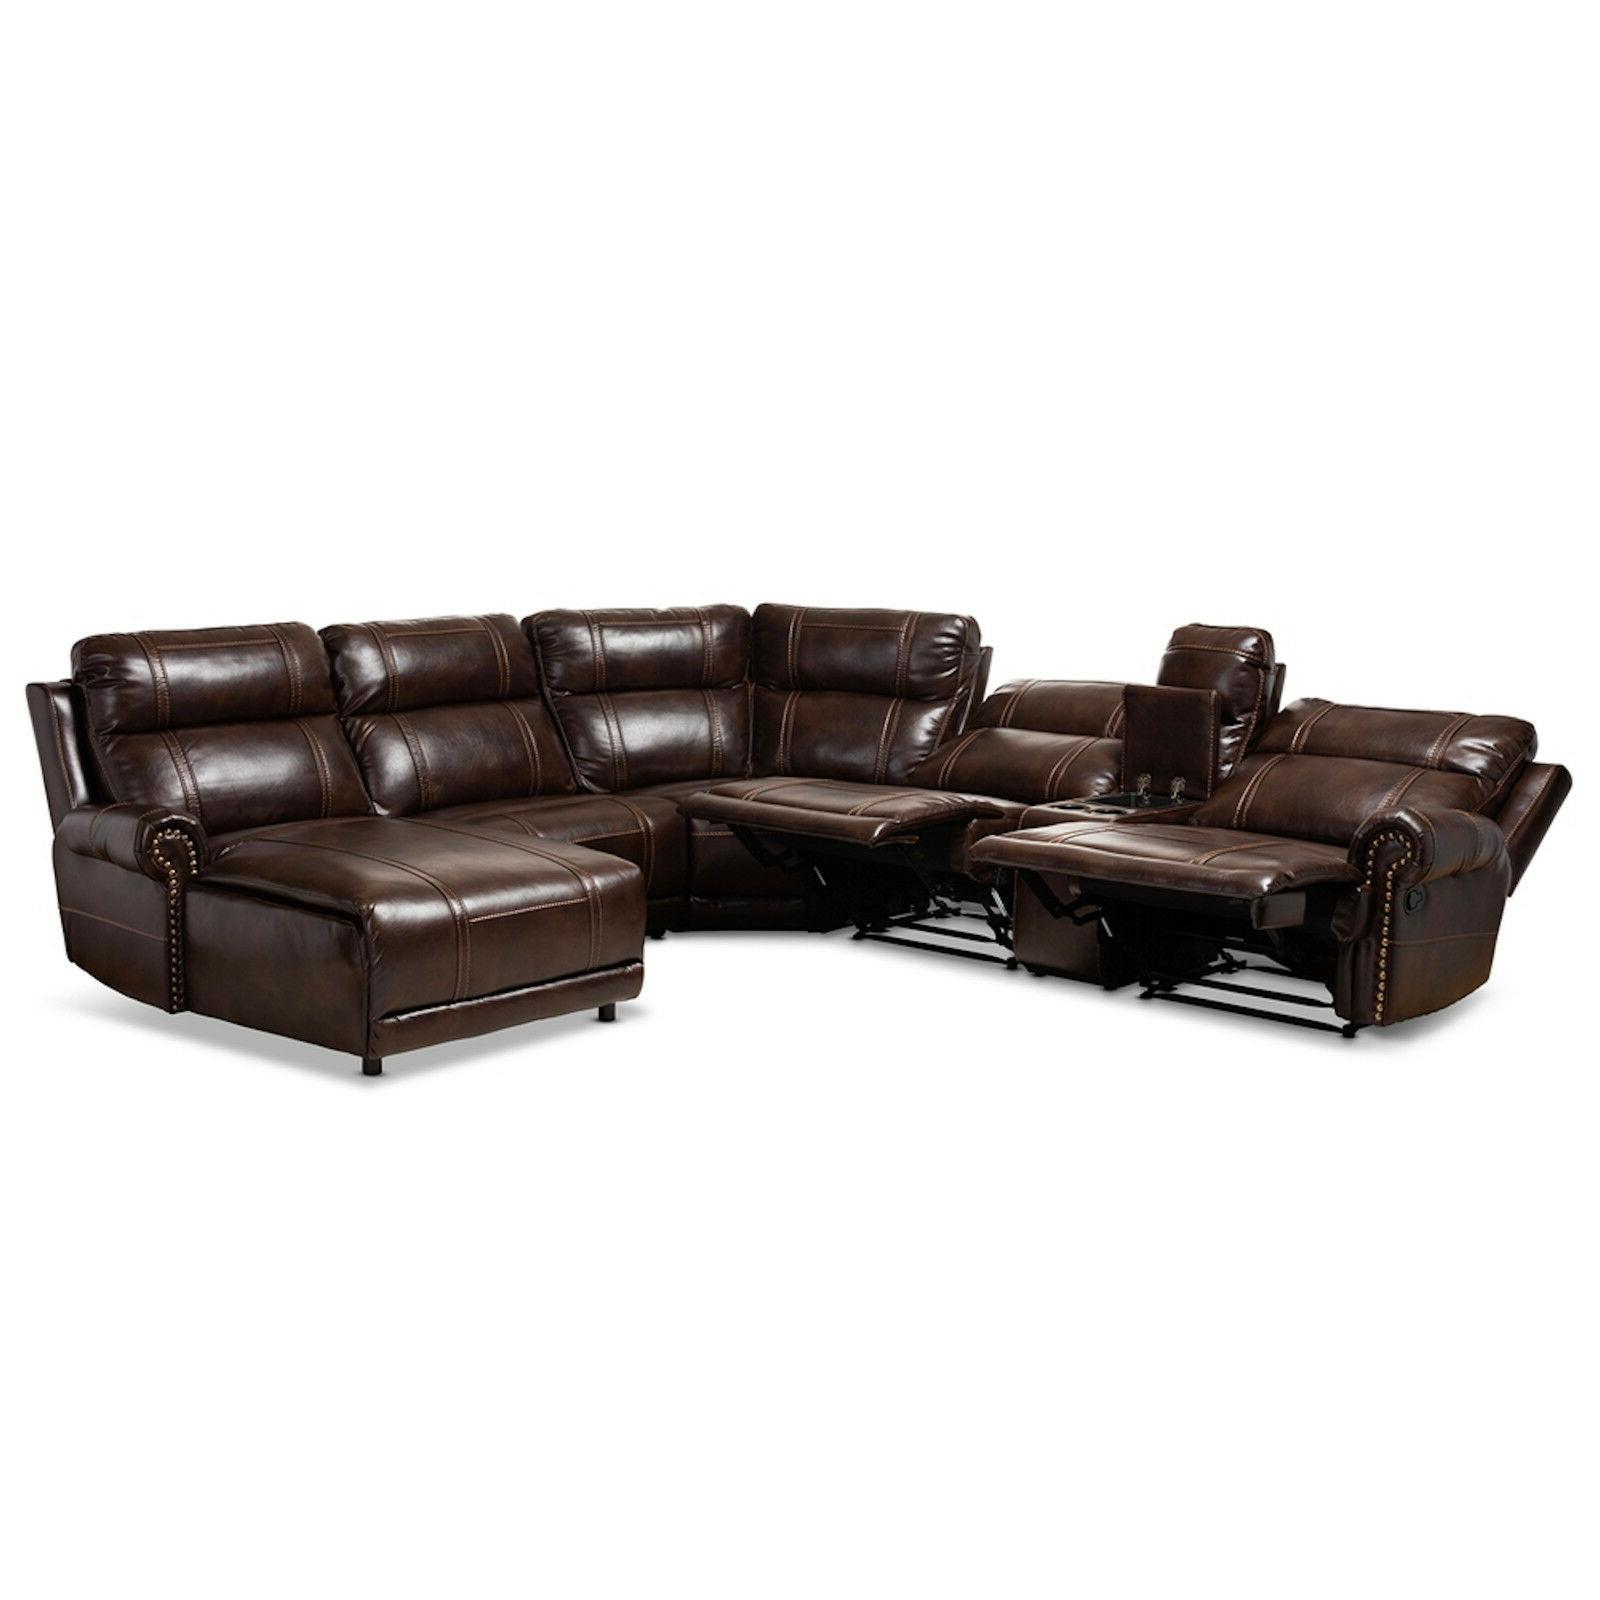 MODERN BROWN LEATHER 6-PIECE THEATER SECTIONAL SOFA RECLINER